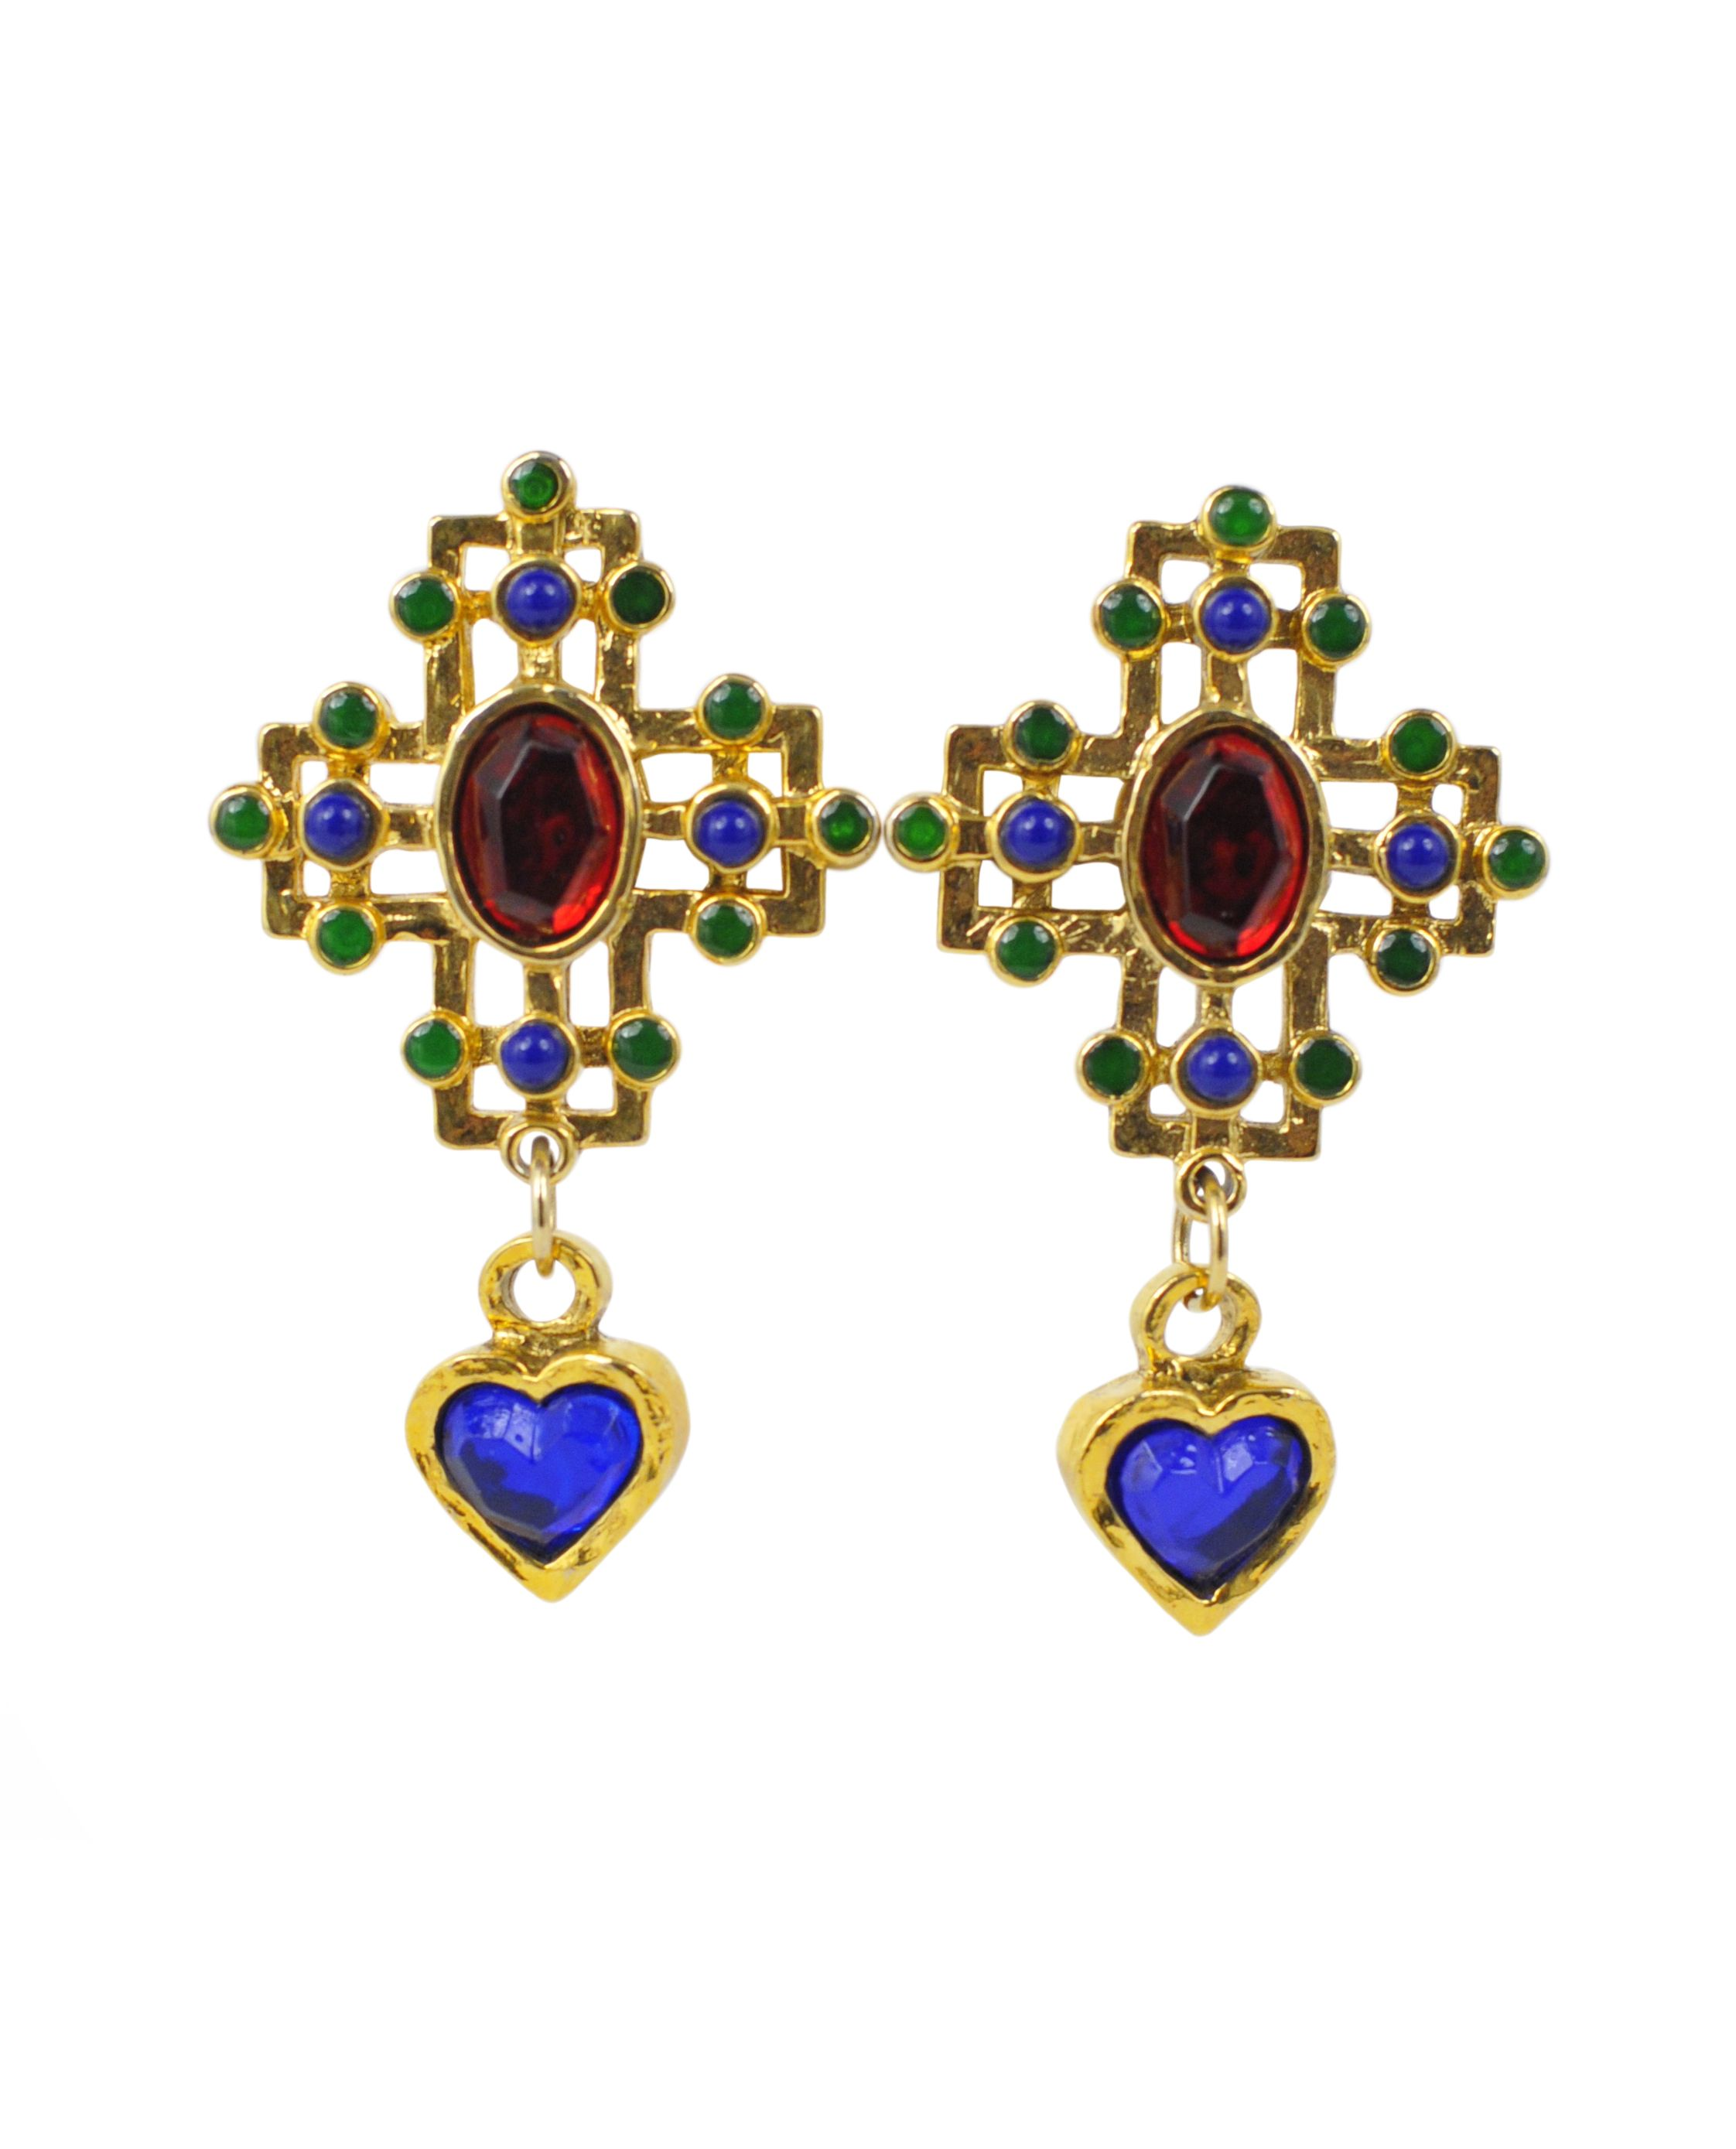 08e155cea86 Vintage Claire Deve Heart & Cross Earrings @ Resurrection Vintage ...